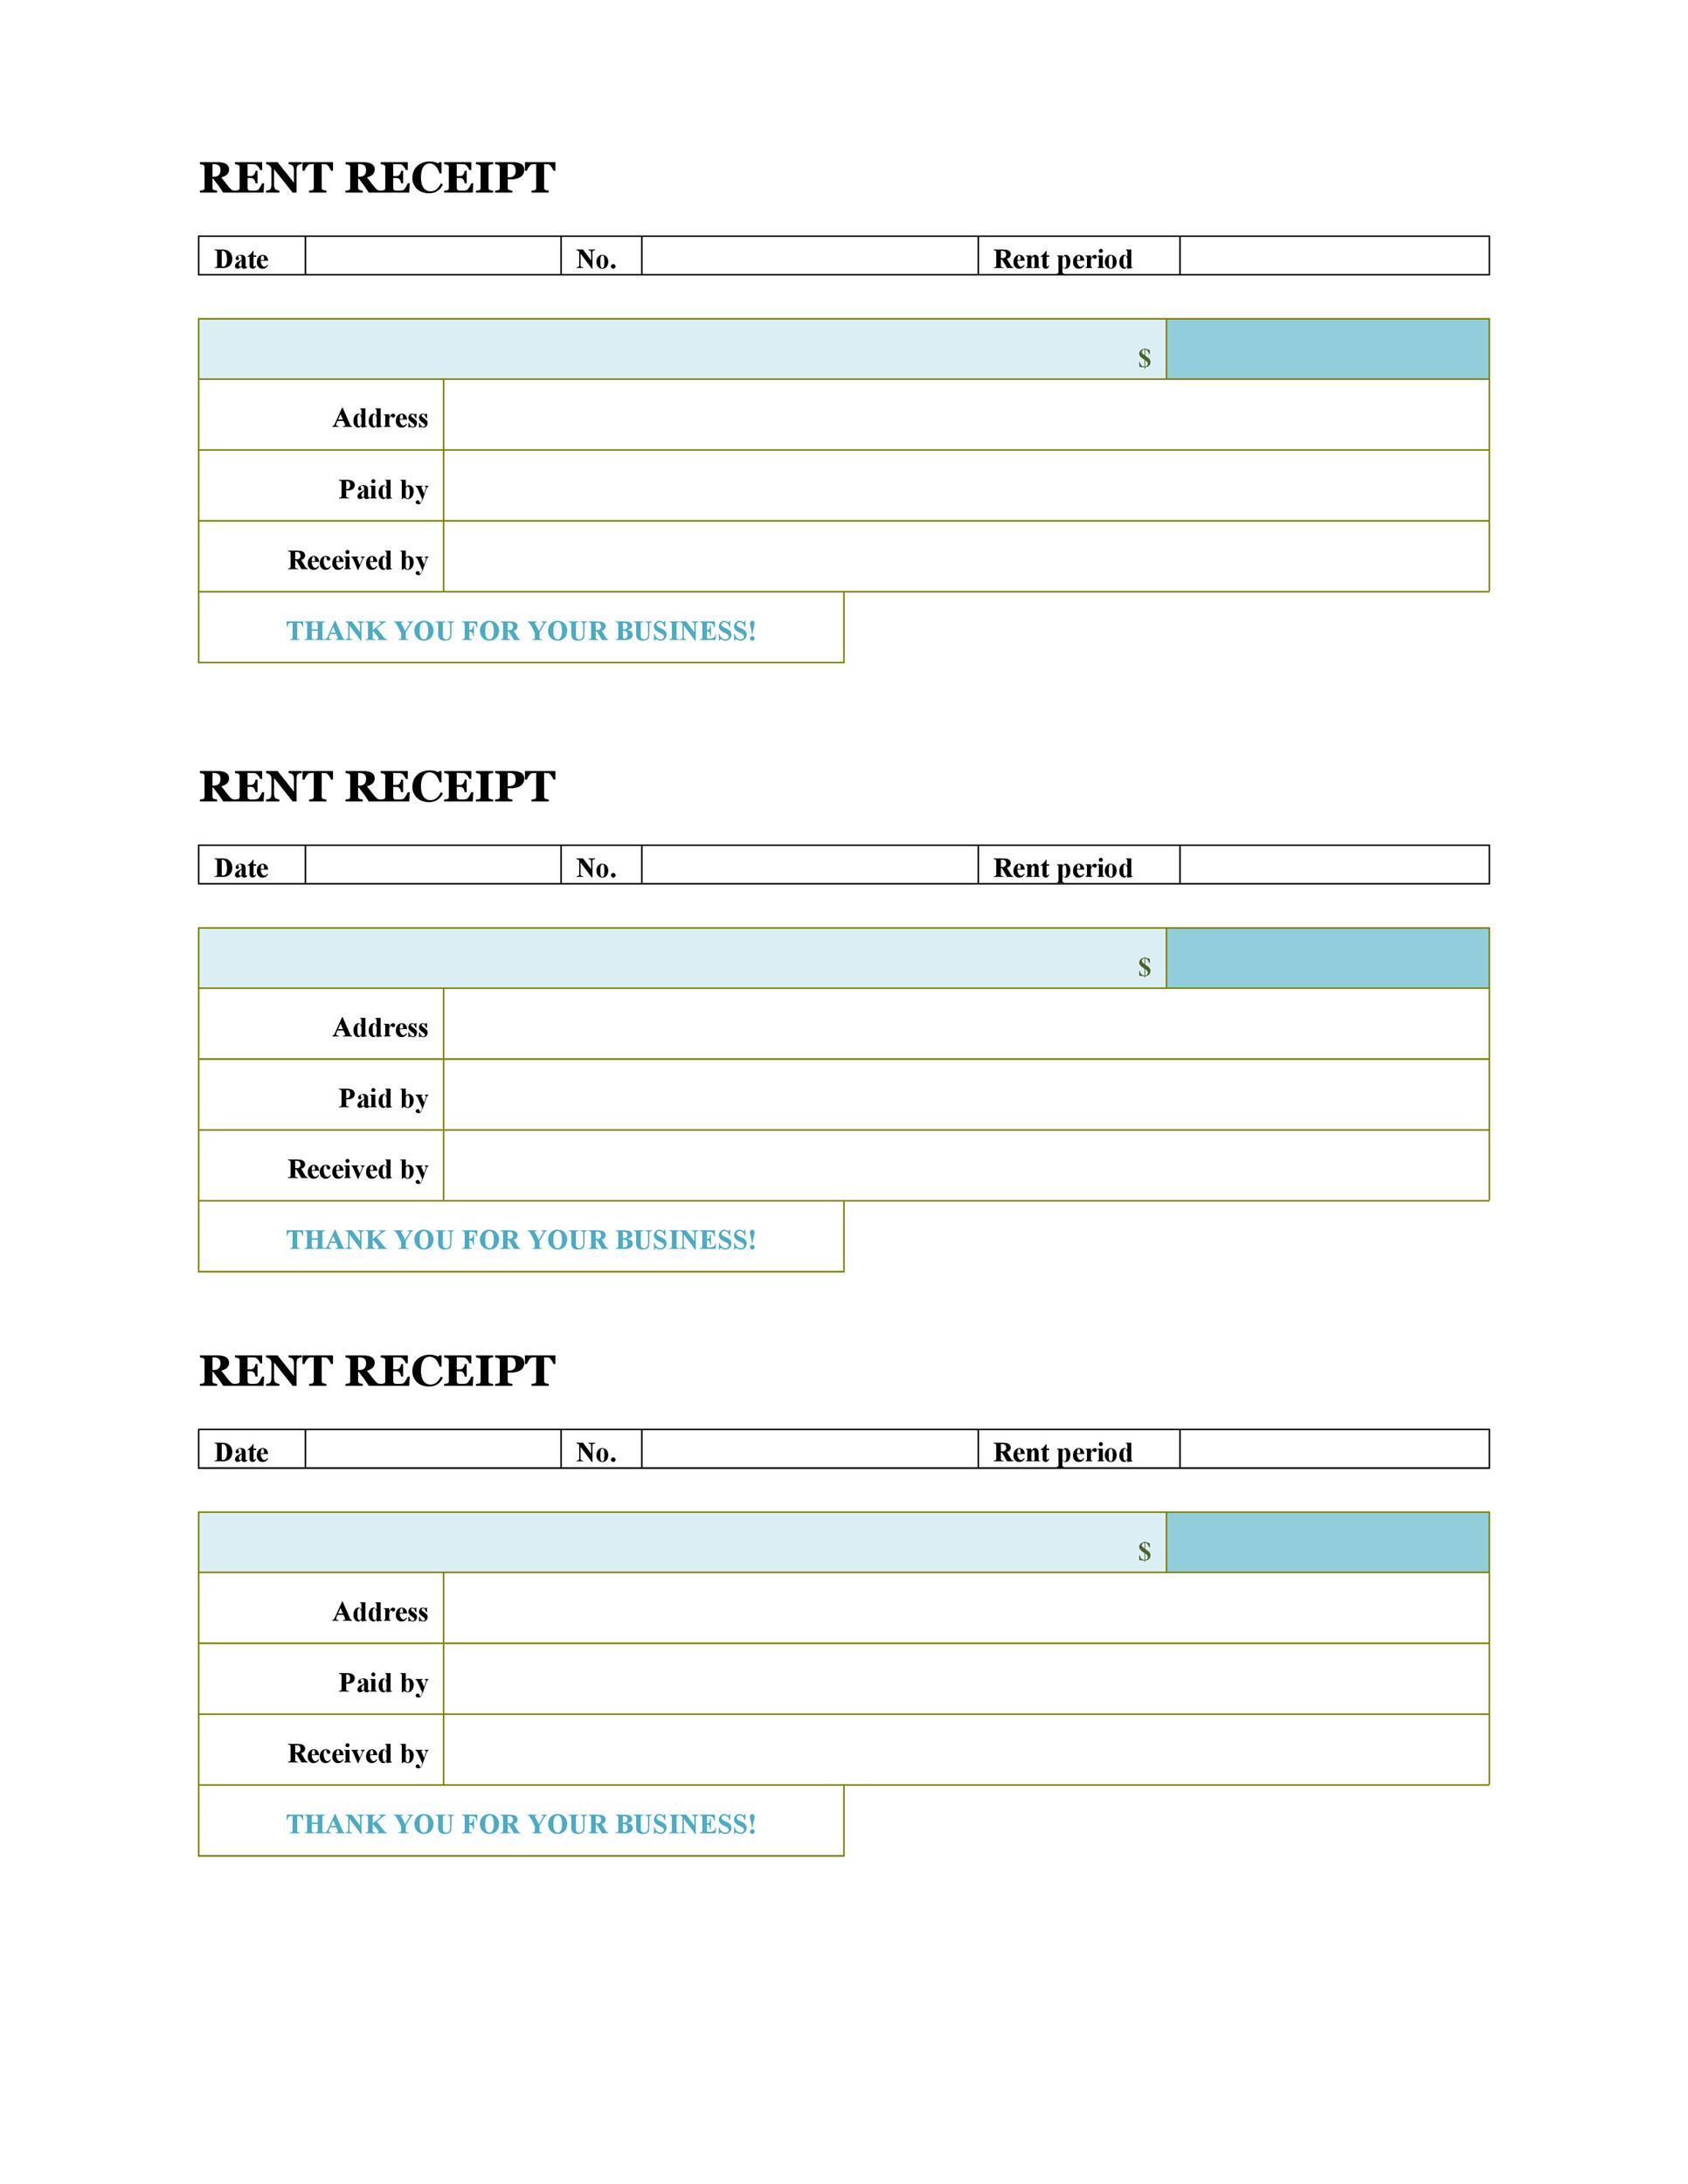 50 Free Receipt Templates Cash Sales Donation Taxi – Rent Receipt Format Word